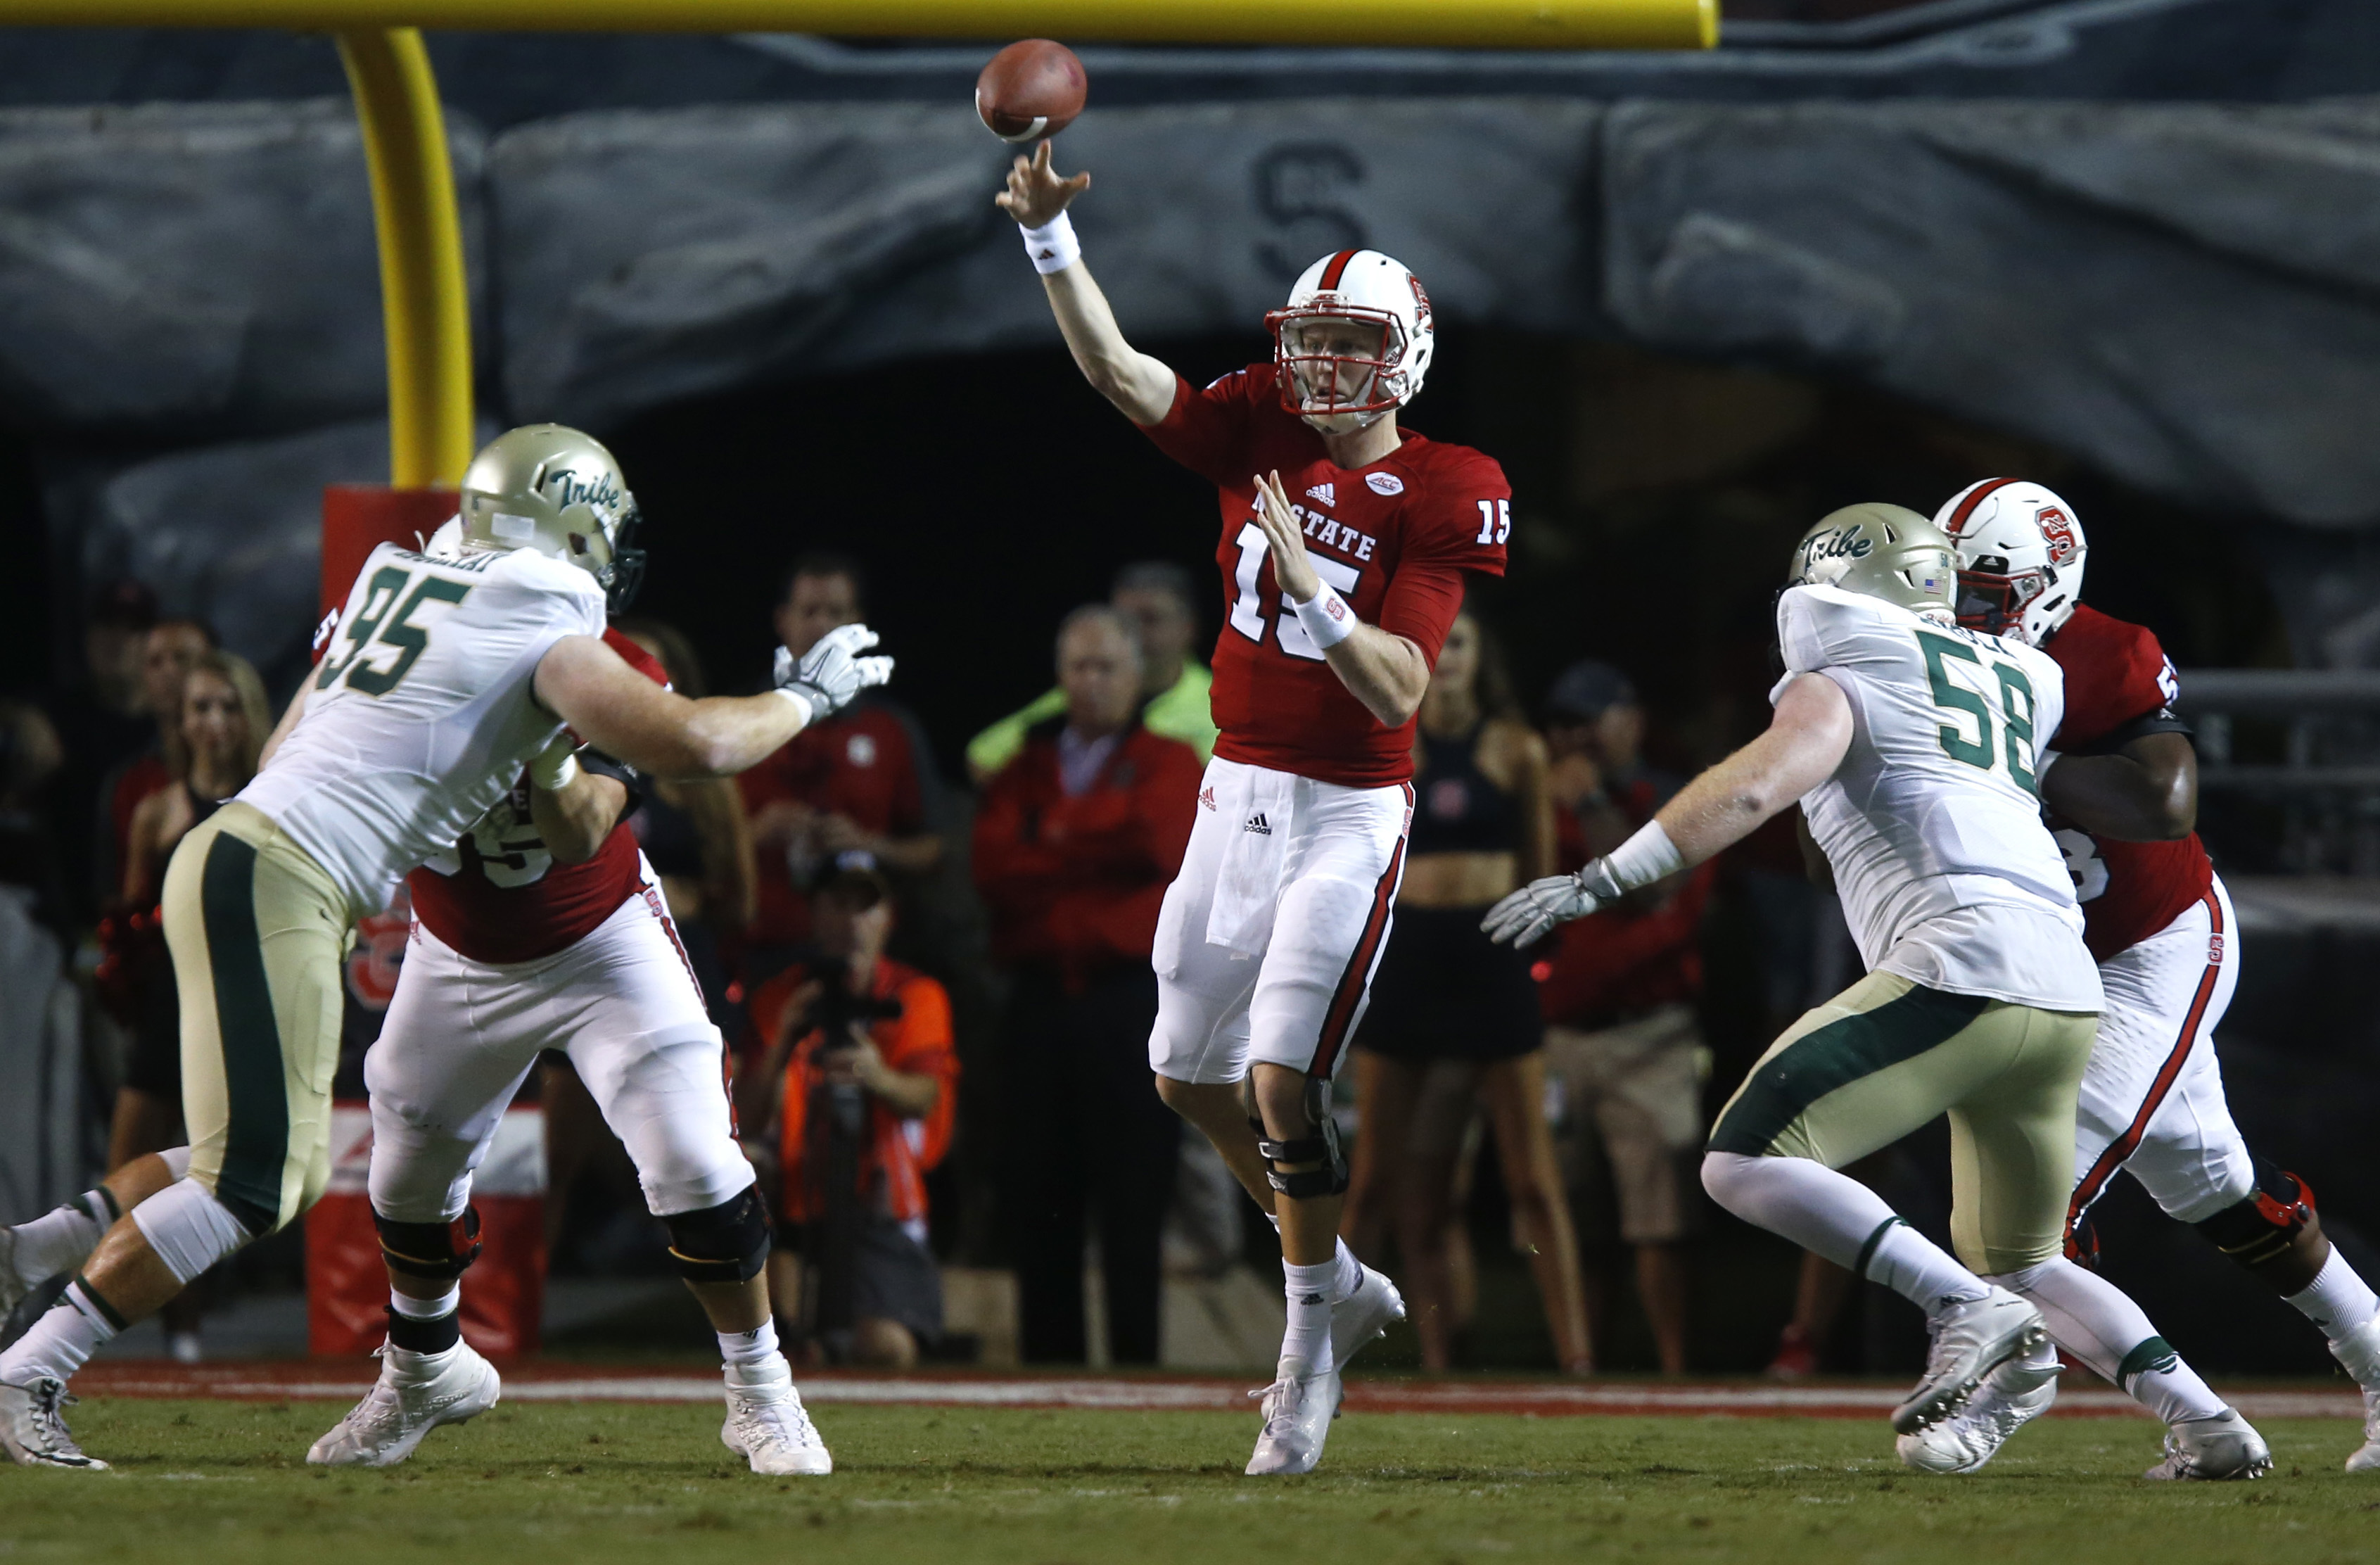 FILE - In this Sept. 1, 2016, file photo, North Carolina State quarterback Ryan Finley (15) passes during the first half of an NCAA college football game against William & Mary,  at Carter-Finley Stadium in Raleigh, N.C. North Carolina State seems to have